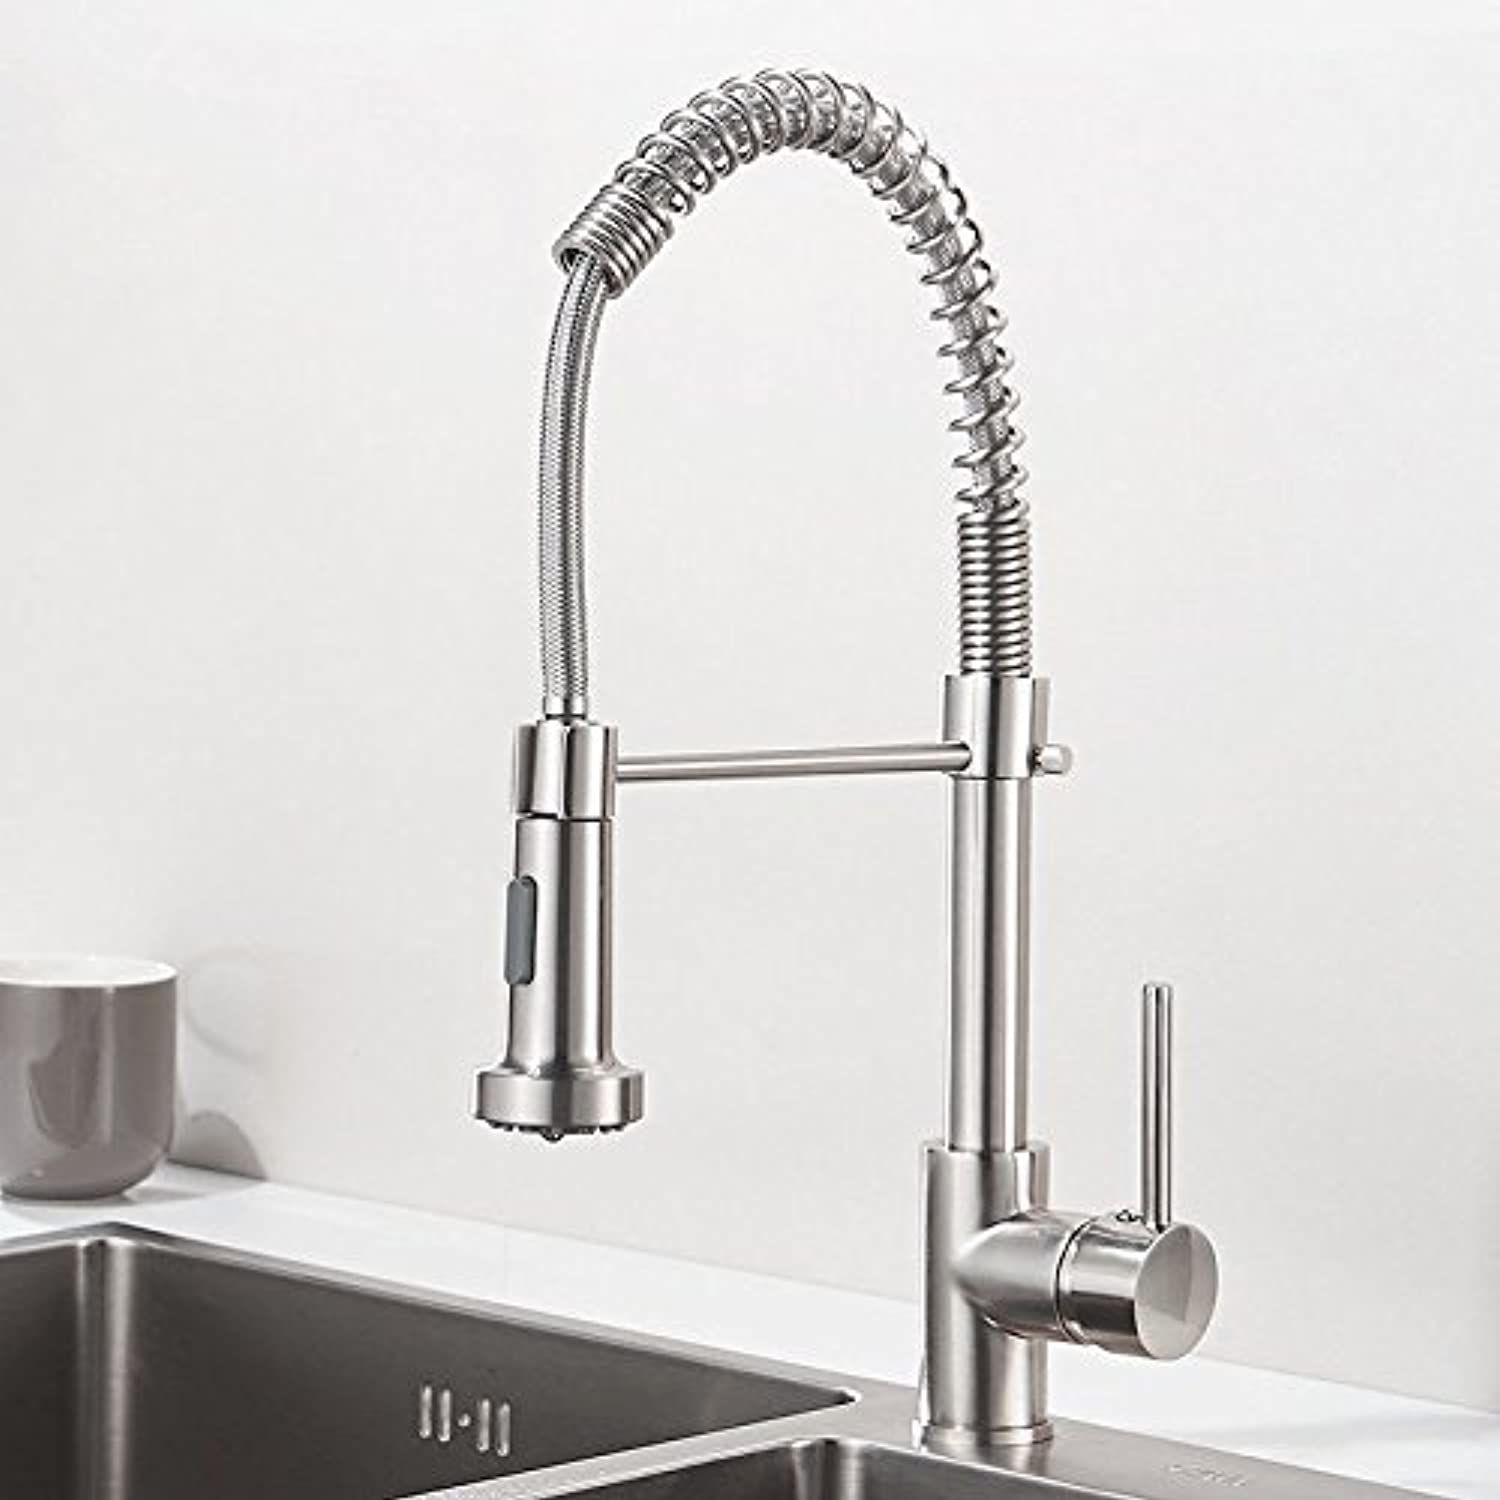 Hlluya Professional Sink Mixer Tap Kitchen Faucet Kitchen faucet full copper spring redary water and bubbles.